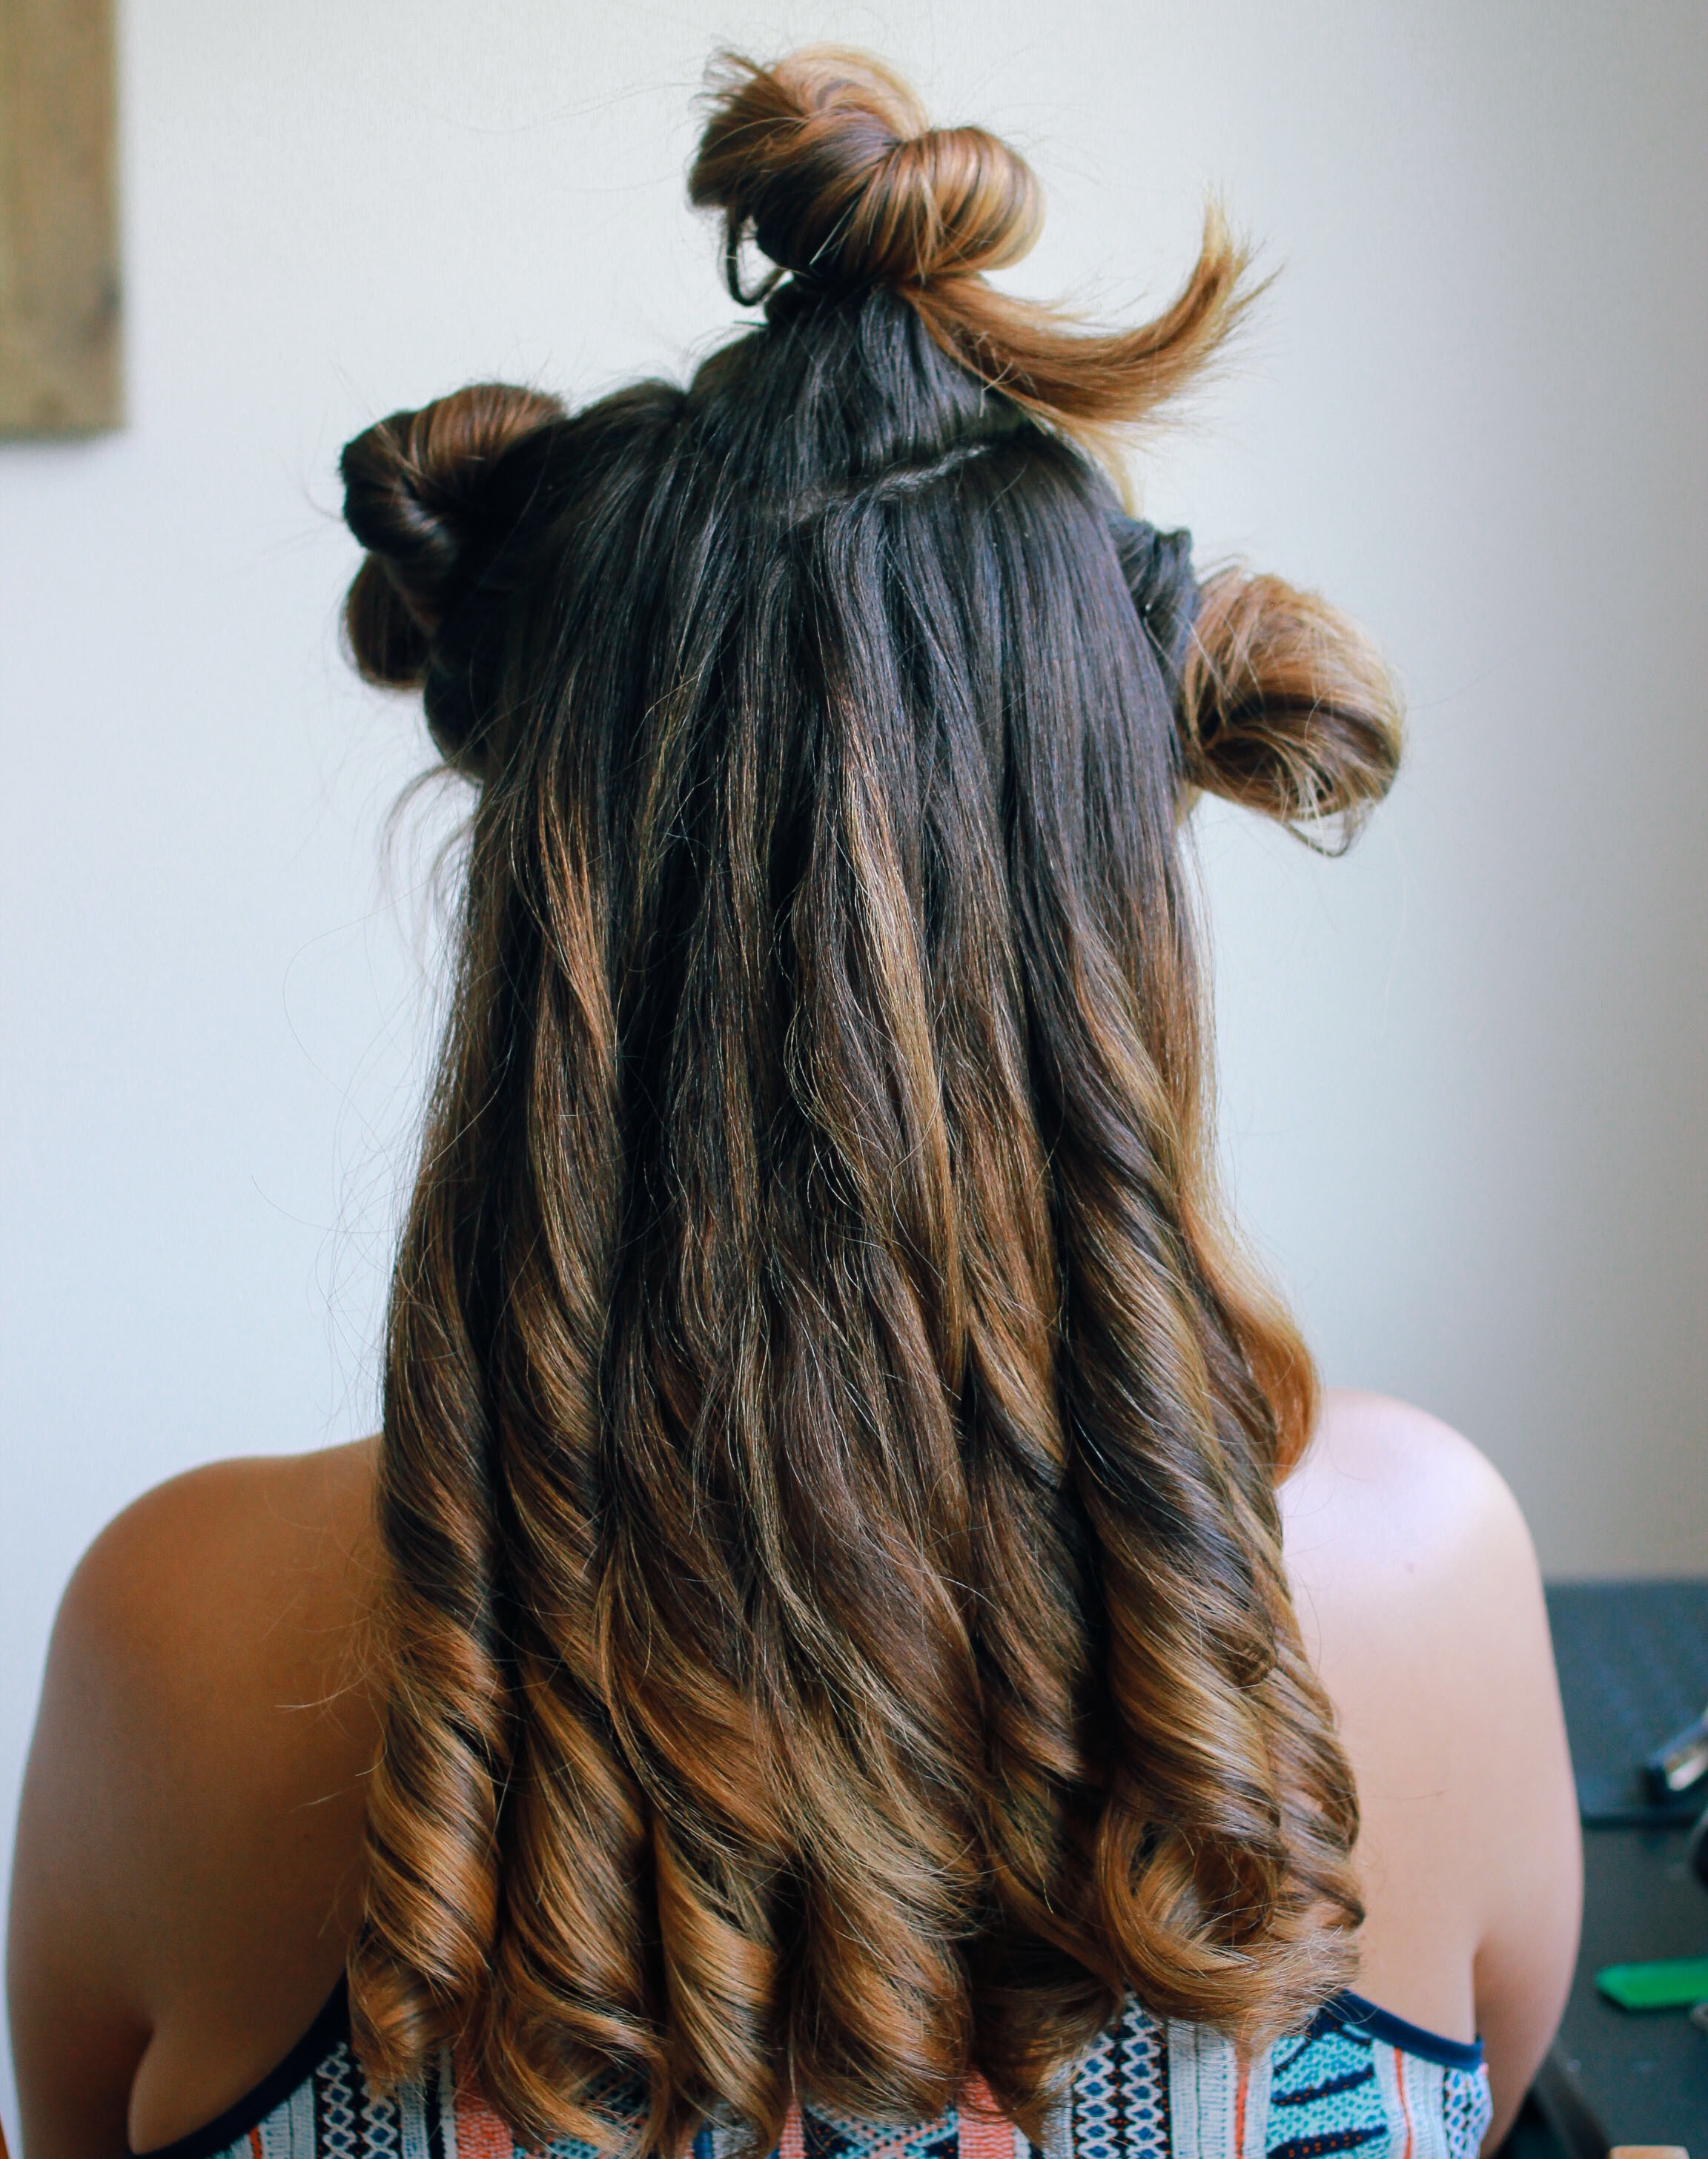 Curled section